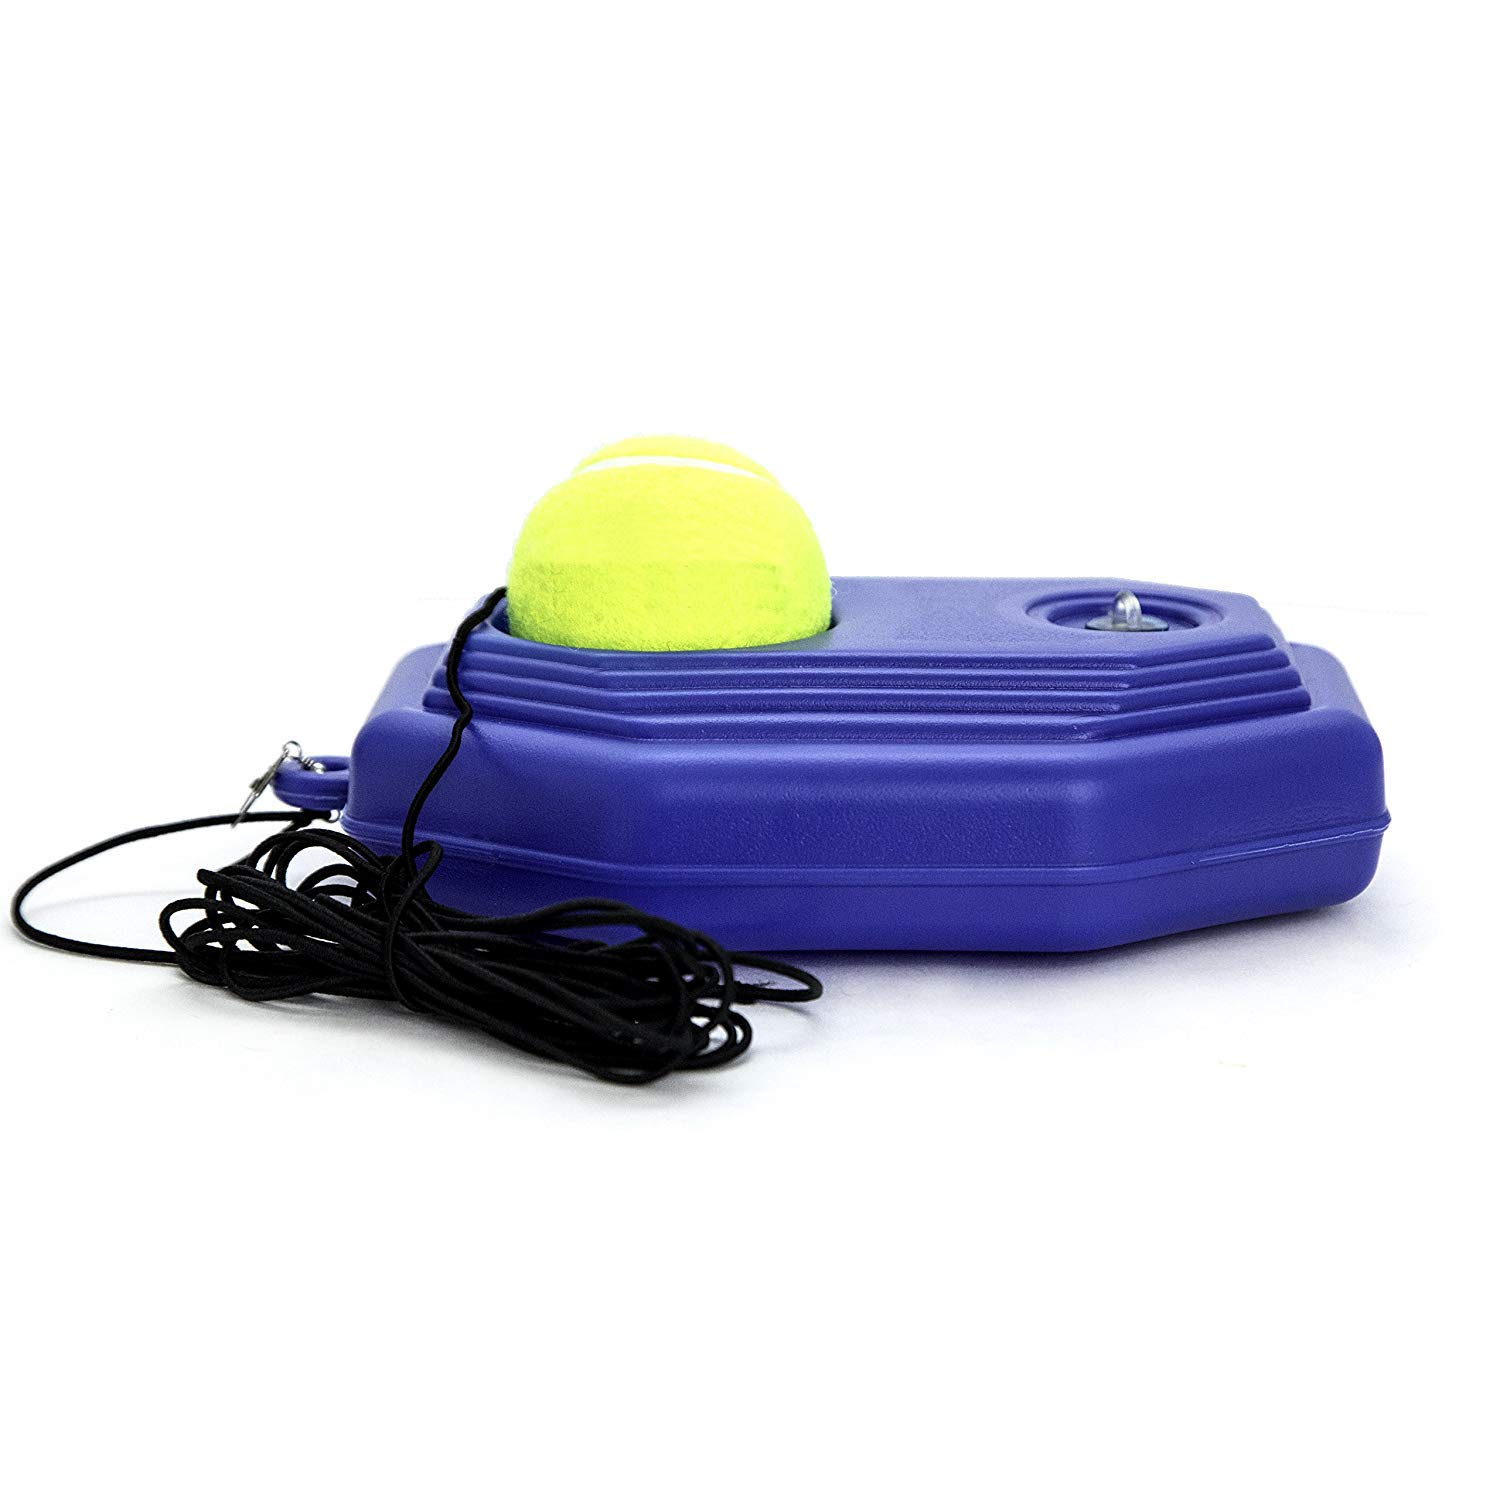 WHPH Tennis Trainer Rebounder Ball | Baseboard with Rope Solo Equipment Practice Training Aid Serve Hopper Sport Exercise Base Powerbase Self-Study Rebound Power Base Rebounder Pro